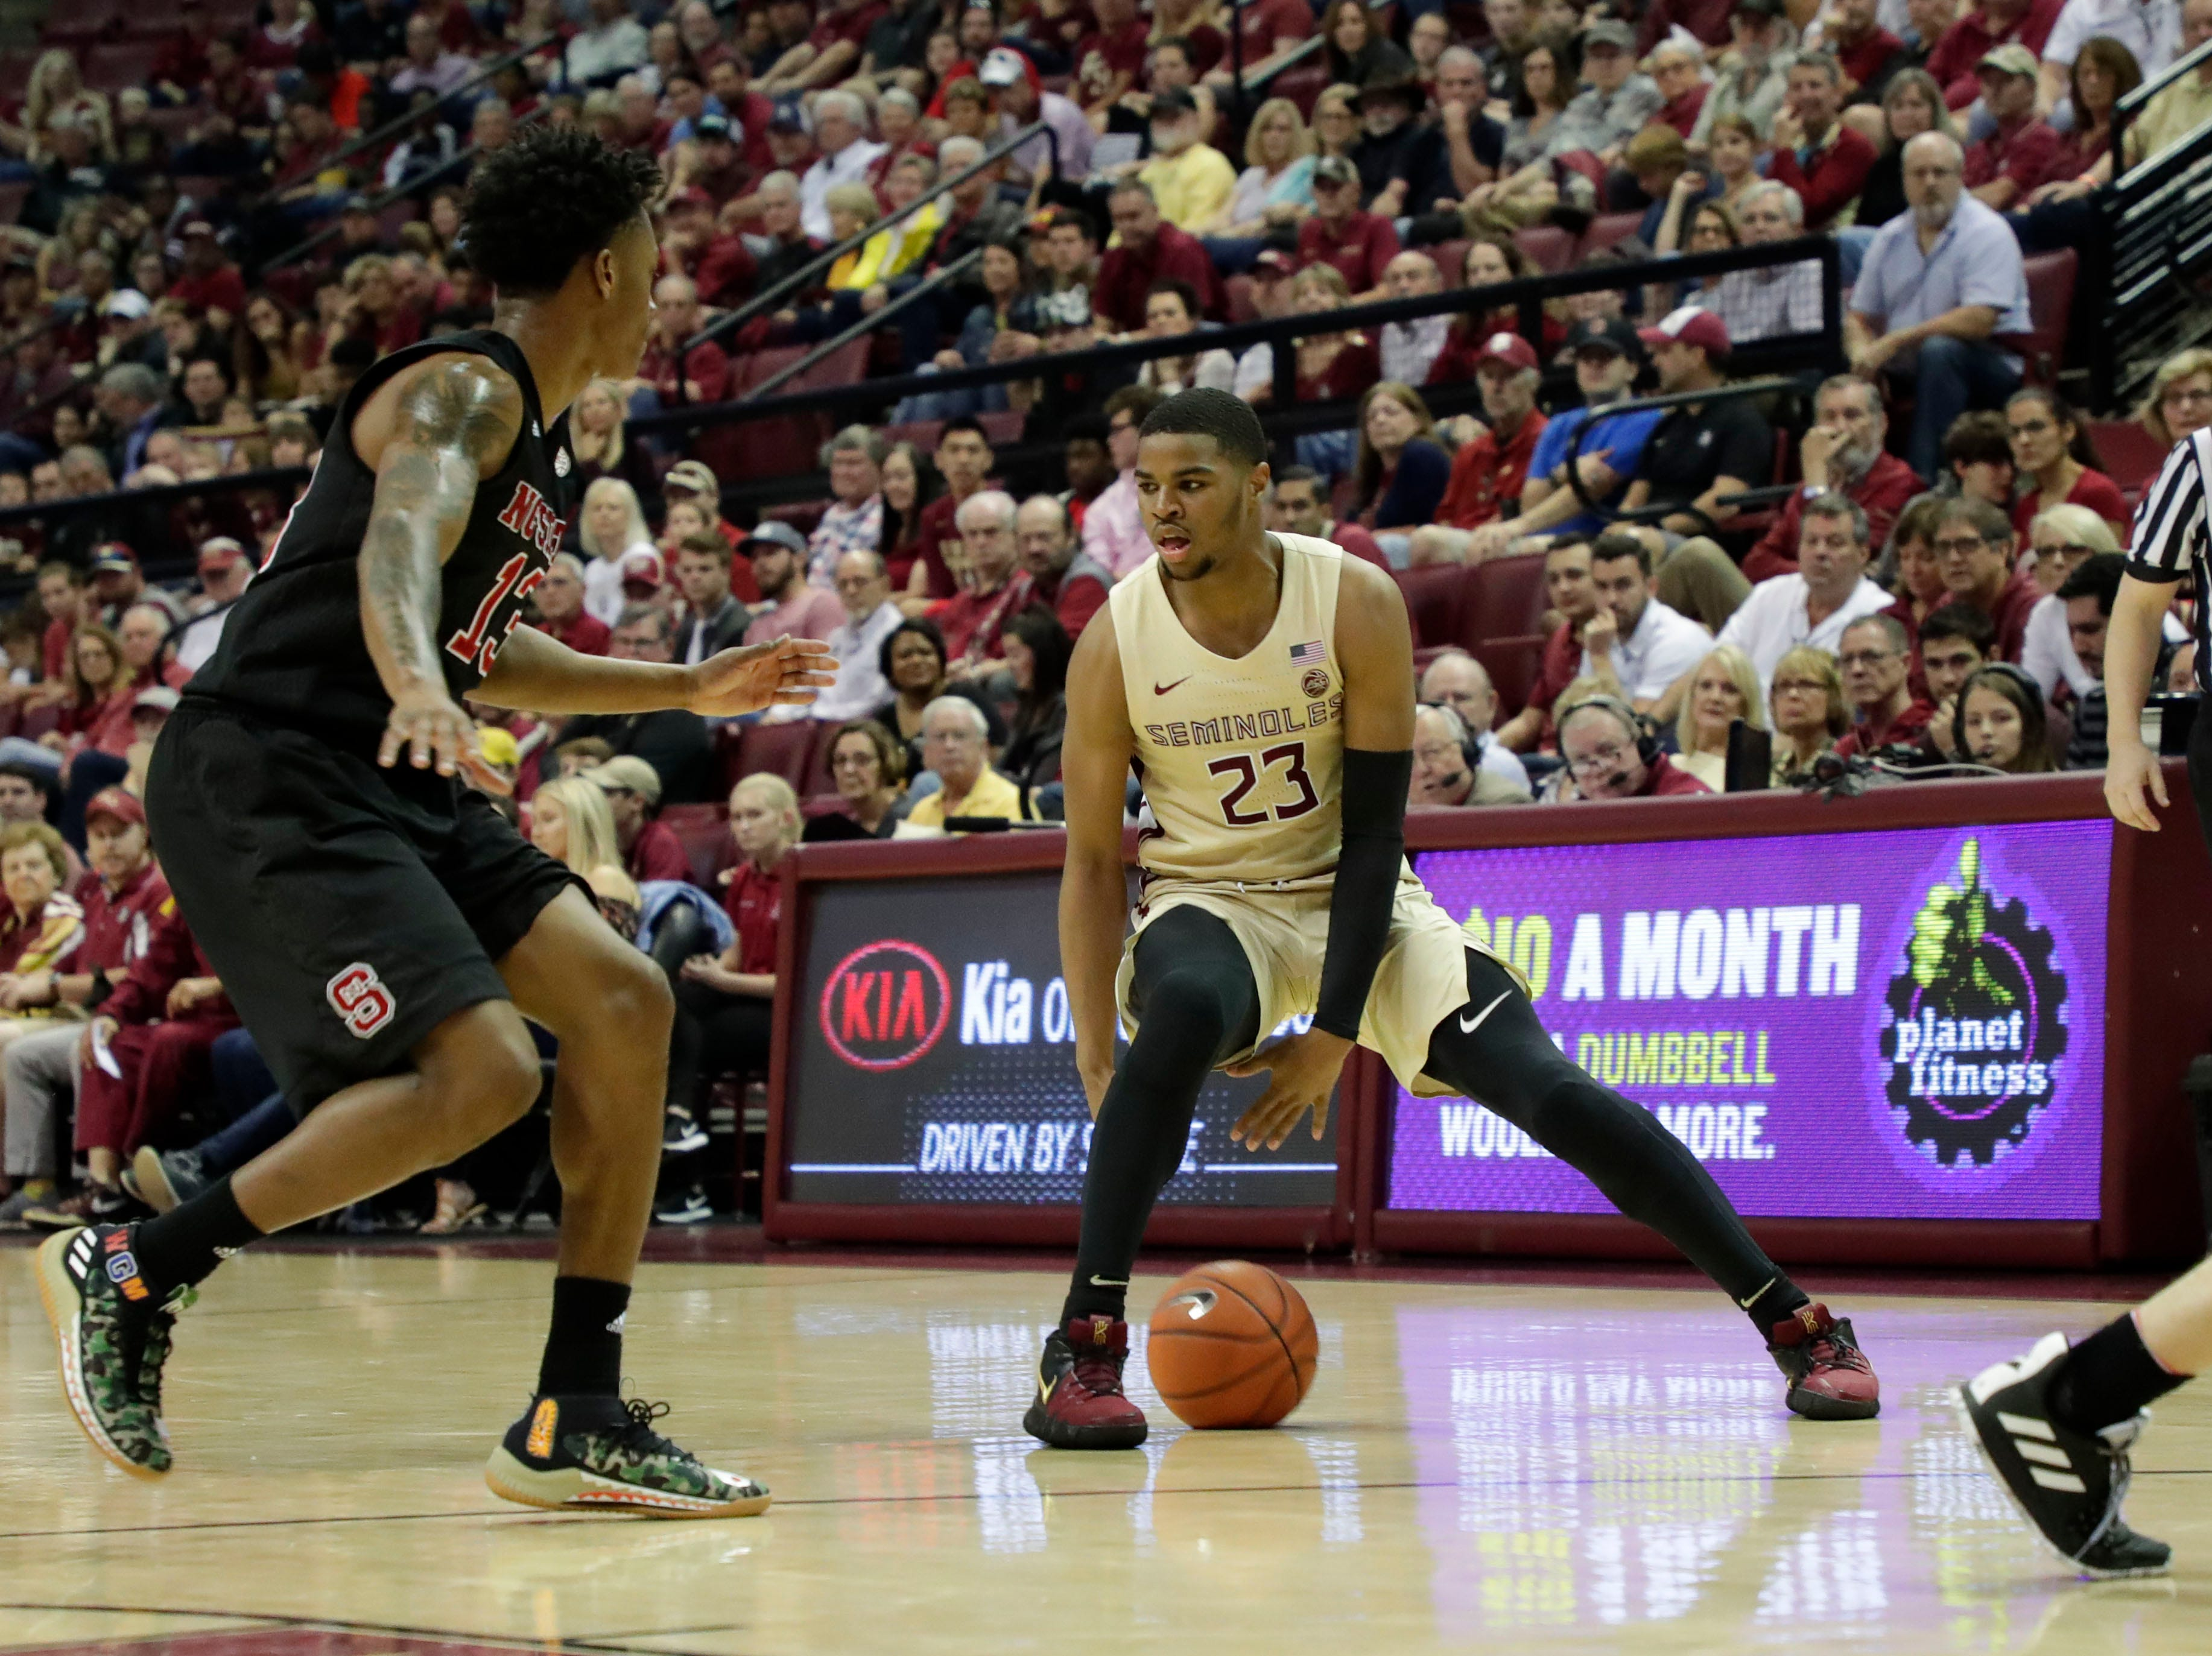 Florida State Seminoles guard M.J. Walker (23) dribbles as he looks for his next move. The Florida State Seminoles host the NC State Wolfpack at the Tucker Civic Center Saturday, March 2, 2019.